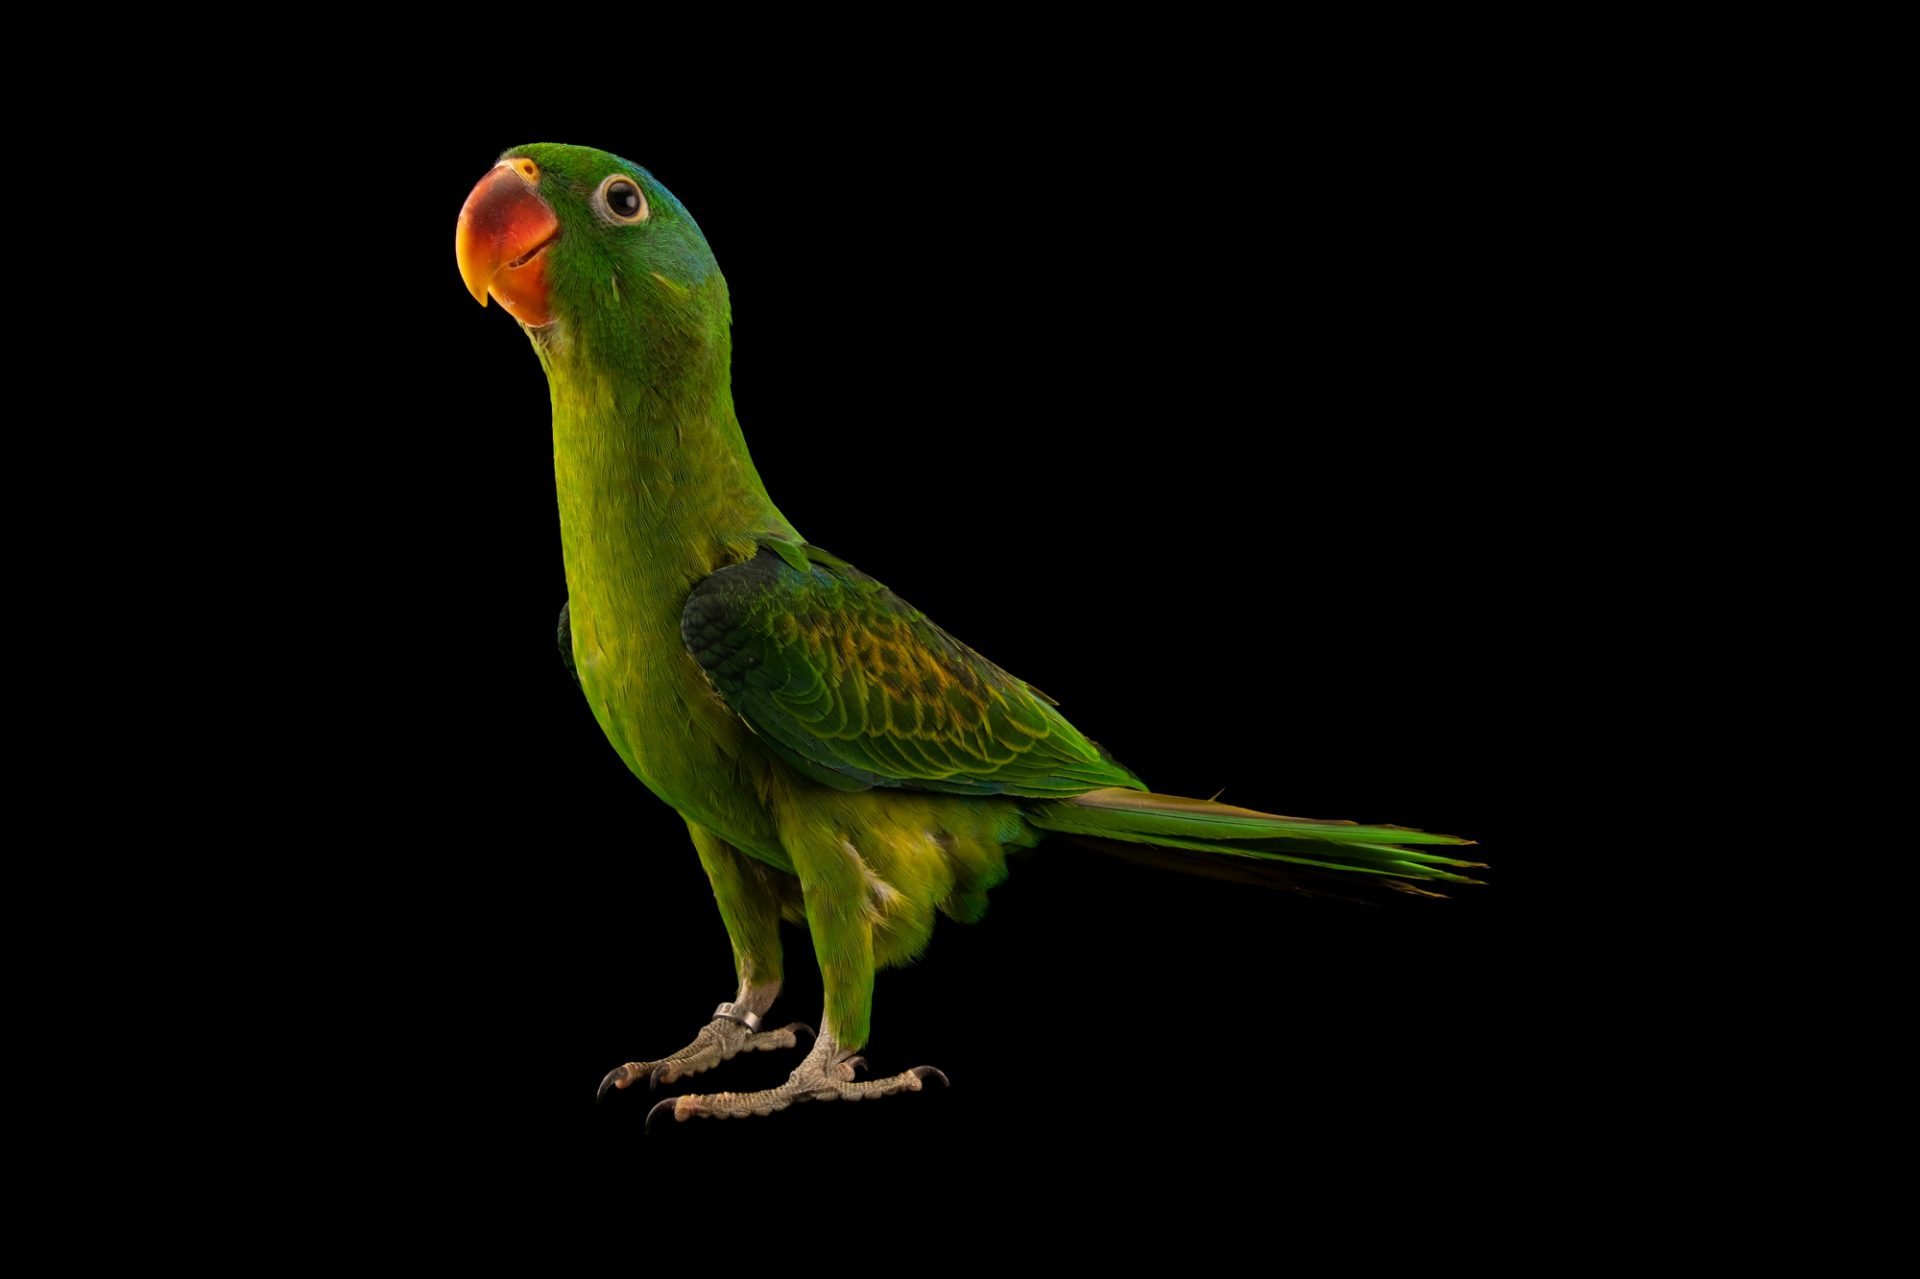 Photo: A blue-naped parrot (Tanygnathus lucionensis salvadorii) at the Talarak Foundation in Kabankalan City, Negros Occidental, Philippines.